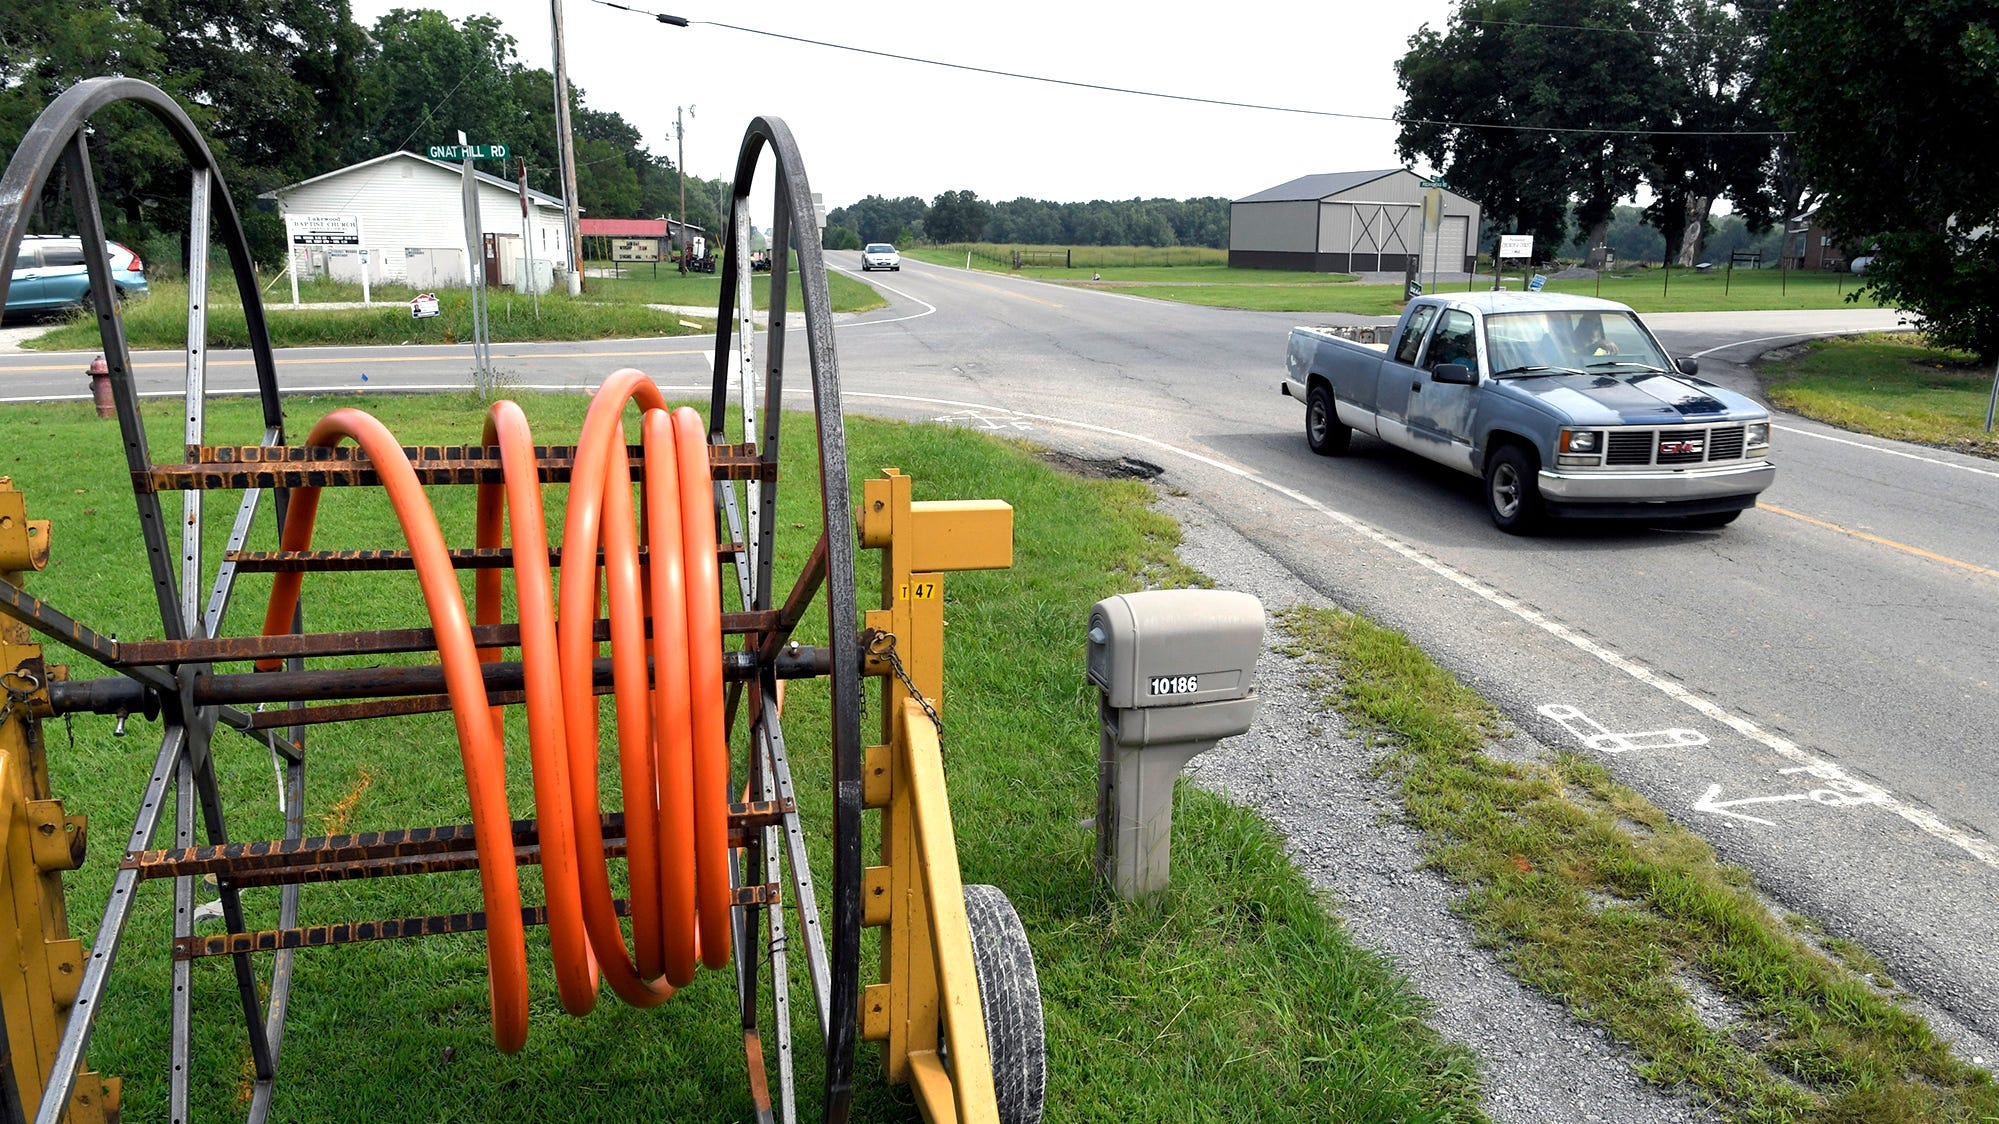 We hear a lot about rural broadband. What is Tennessee actually doing?